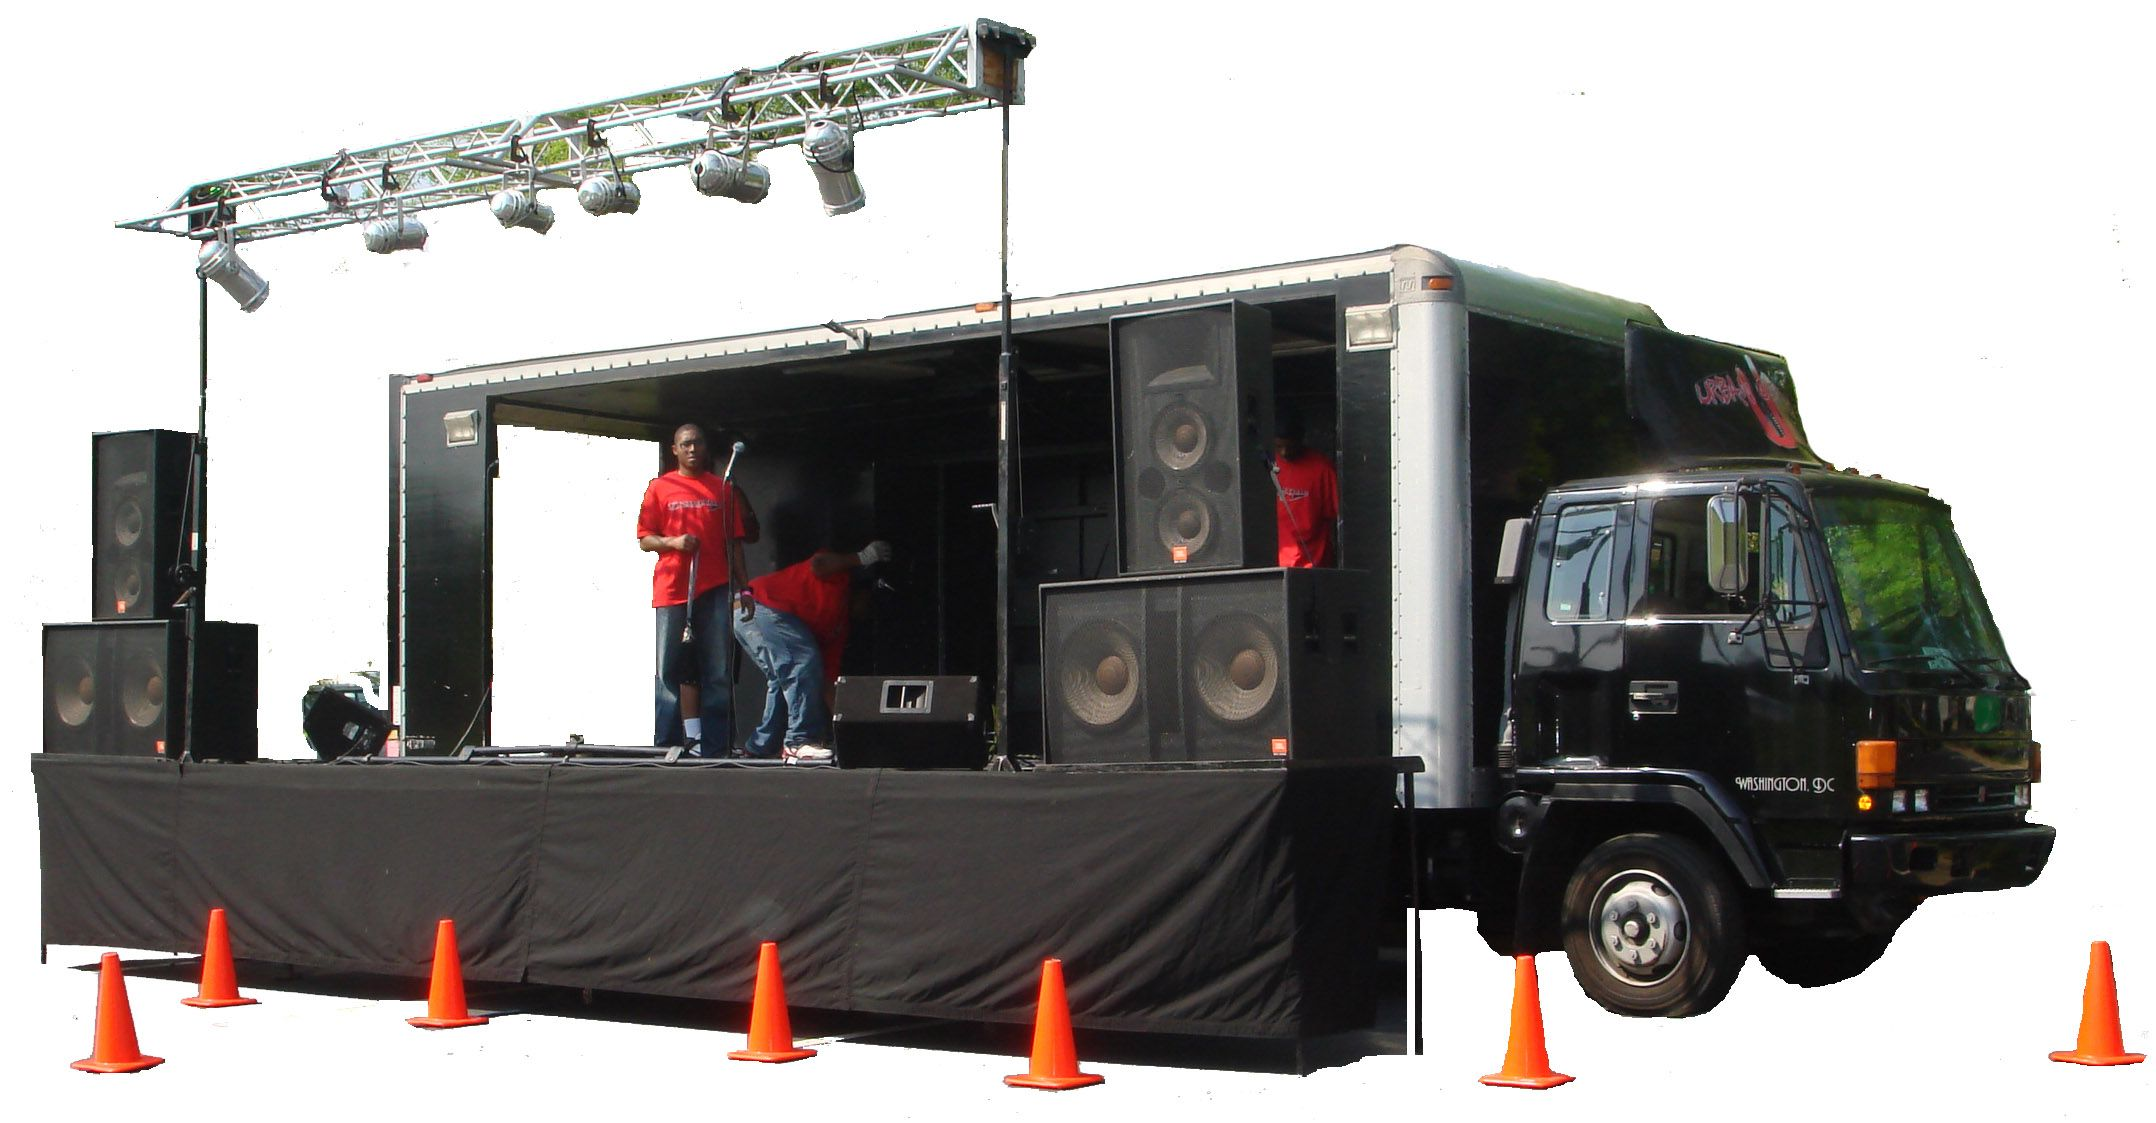 mobile music stage Mobile Music Stage Pinterest